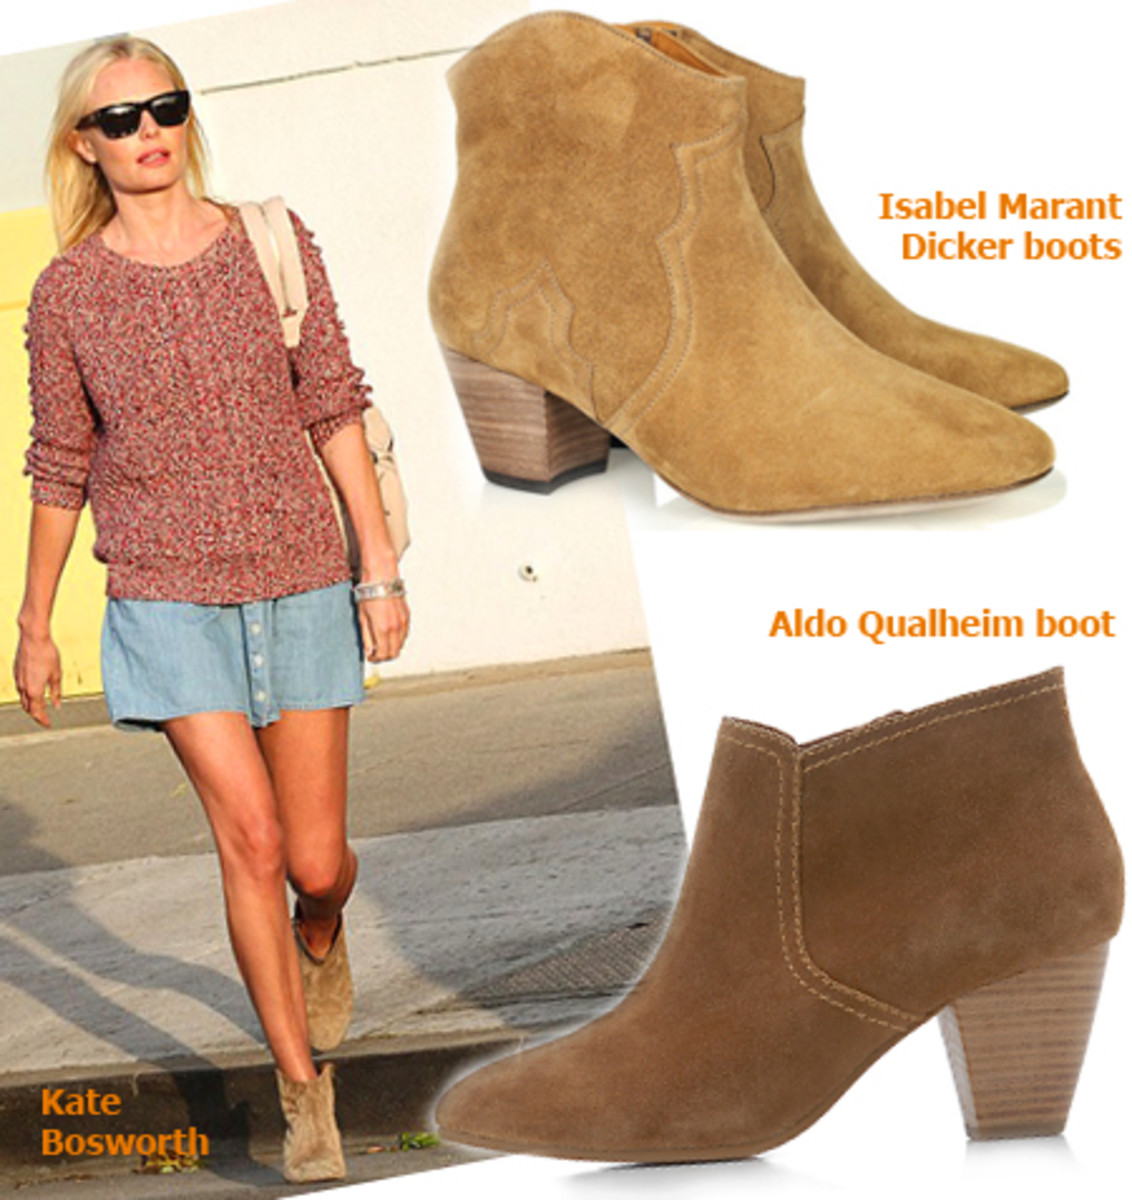 Kate Bosworth_Isabel Marant Dicker boots_Aldo Qualheim boot